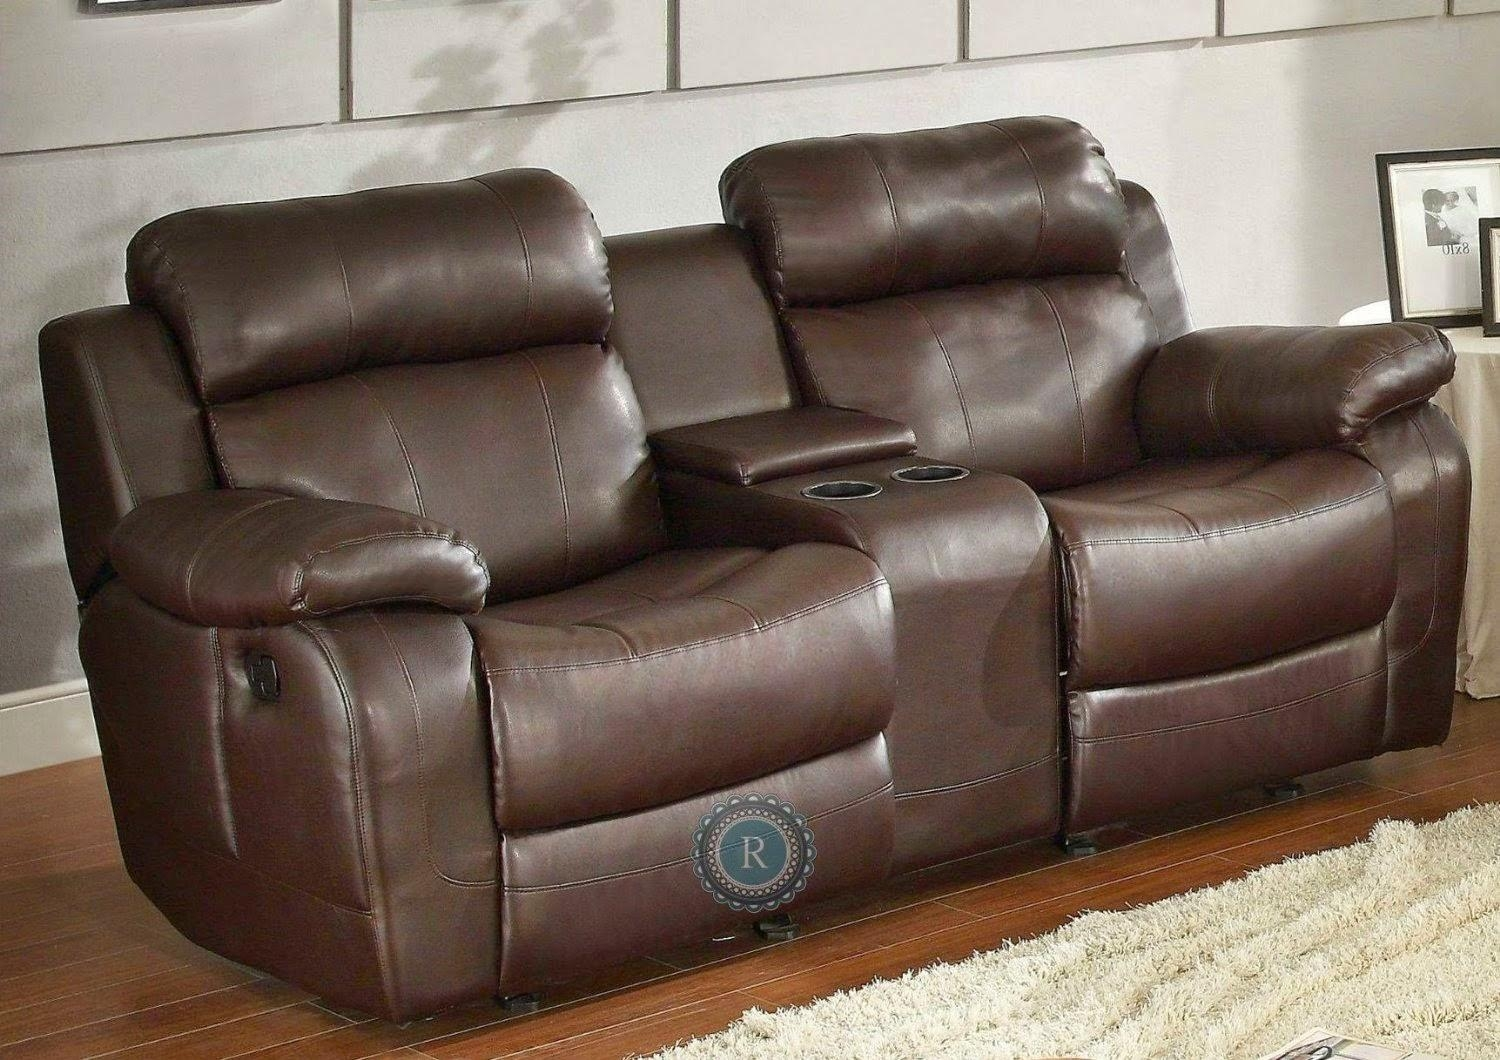 Sofas Center : Beautifulclining Sofa With Center Console Gallery With Sofas With Console (View 3 of 20)